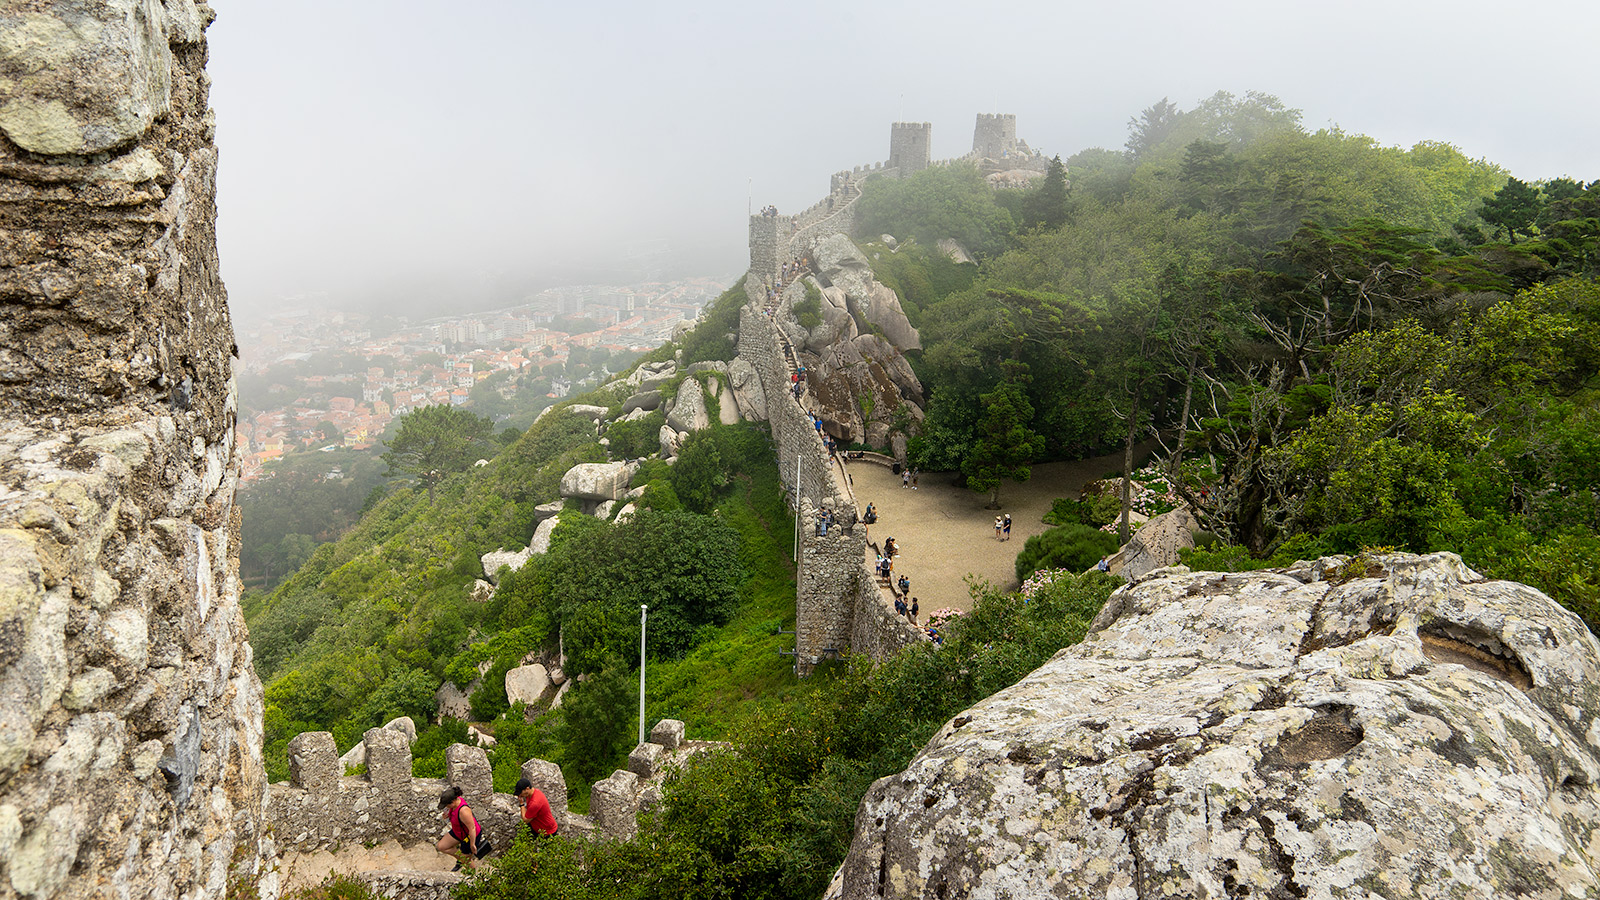 Foggy views from the Castle of the Moors (Castelo dos Mouros). On good weather, the views are amazing.